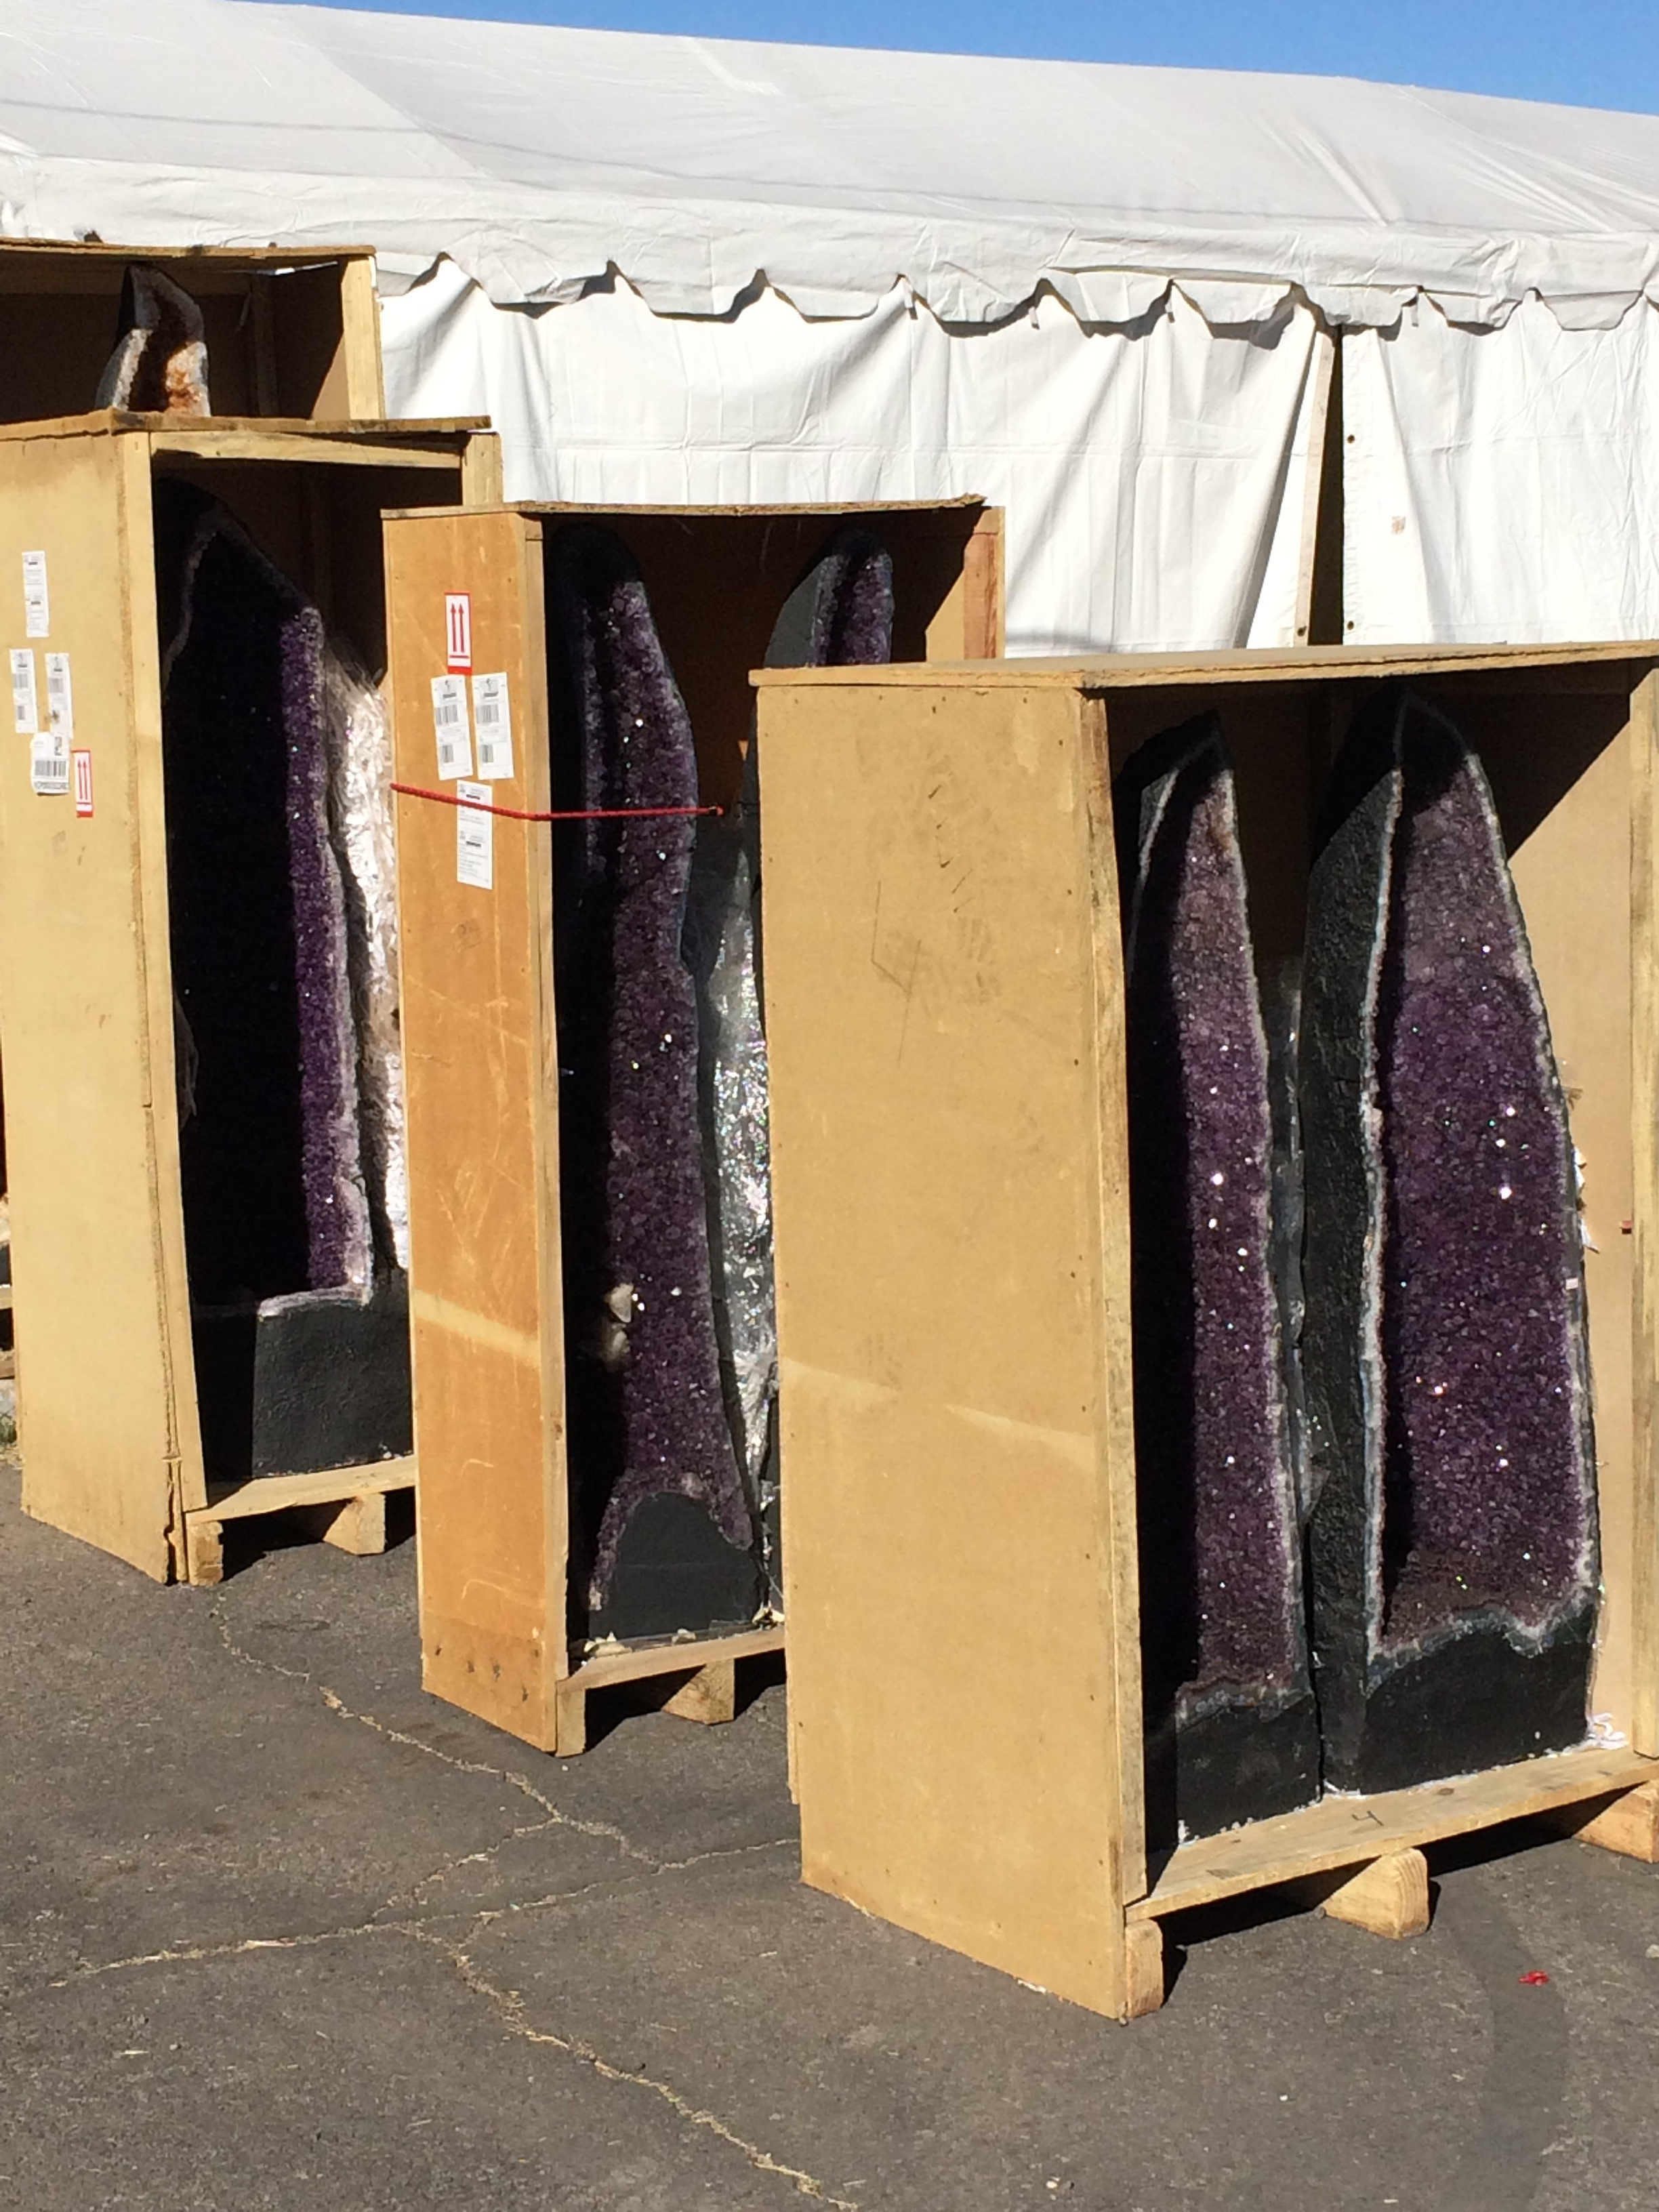 Typical for the show are giant geodes, here are Amethyst